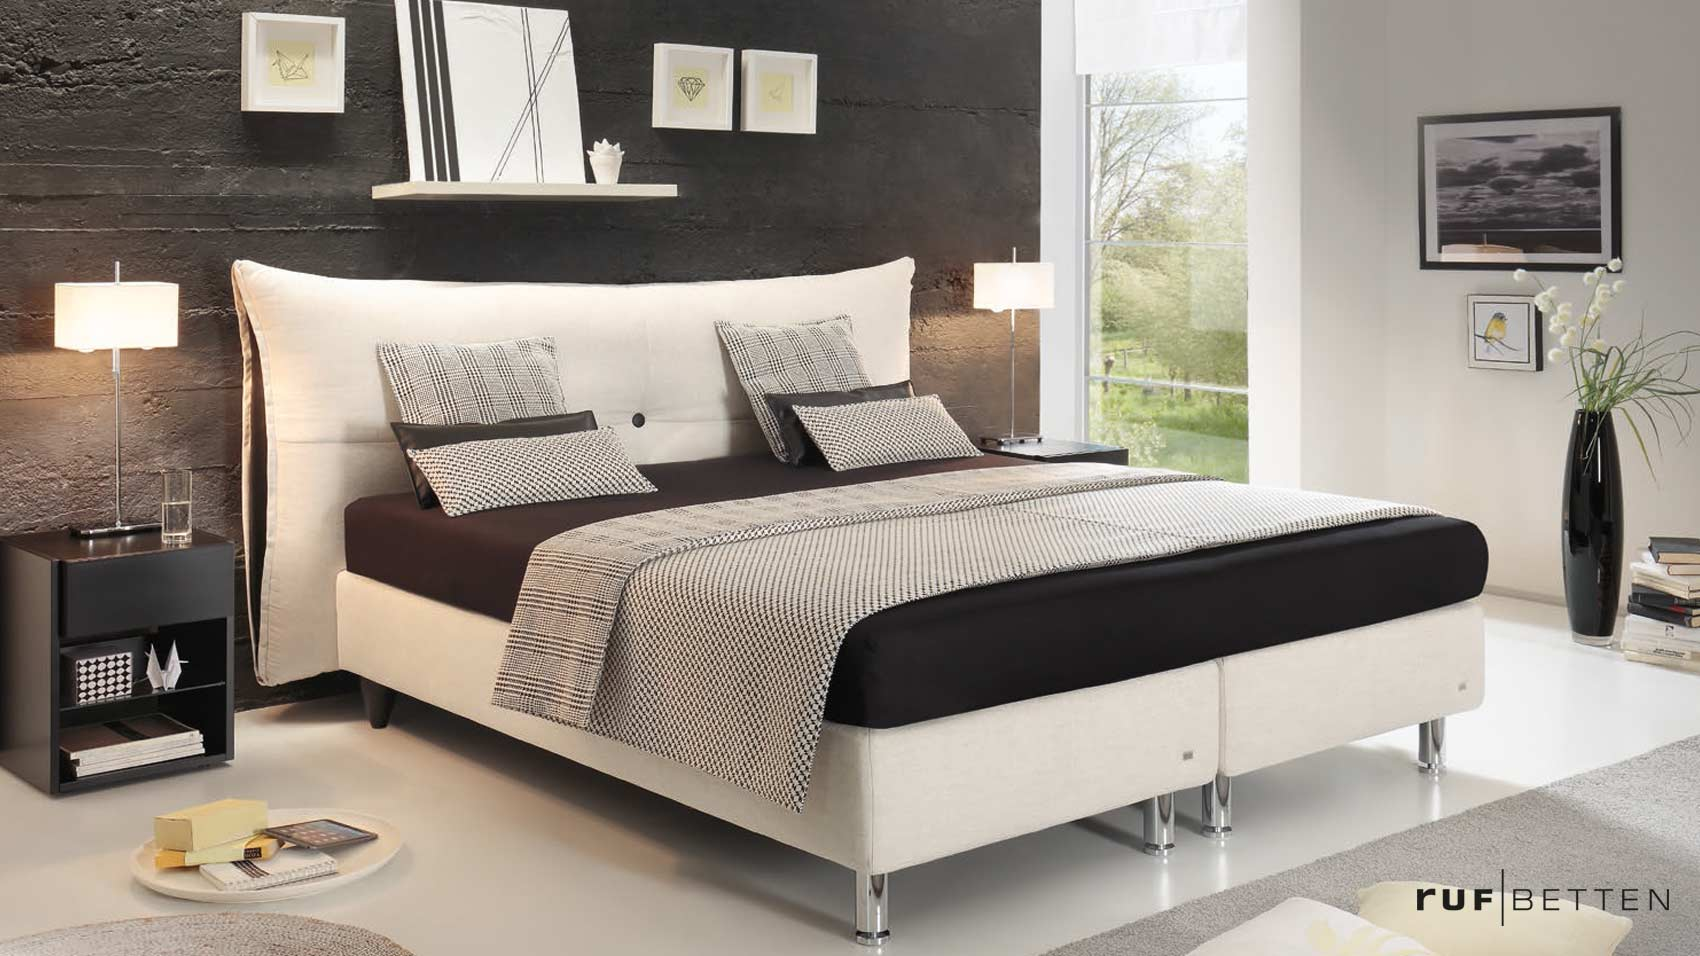 ruf betten nahe erfurt weimar jena m bel u k chen by land blankenhain. Black Bedroom Furniture Sets. Home Design Ideas